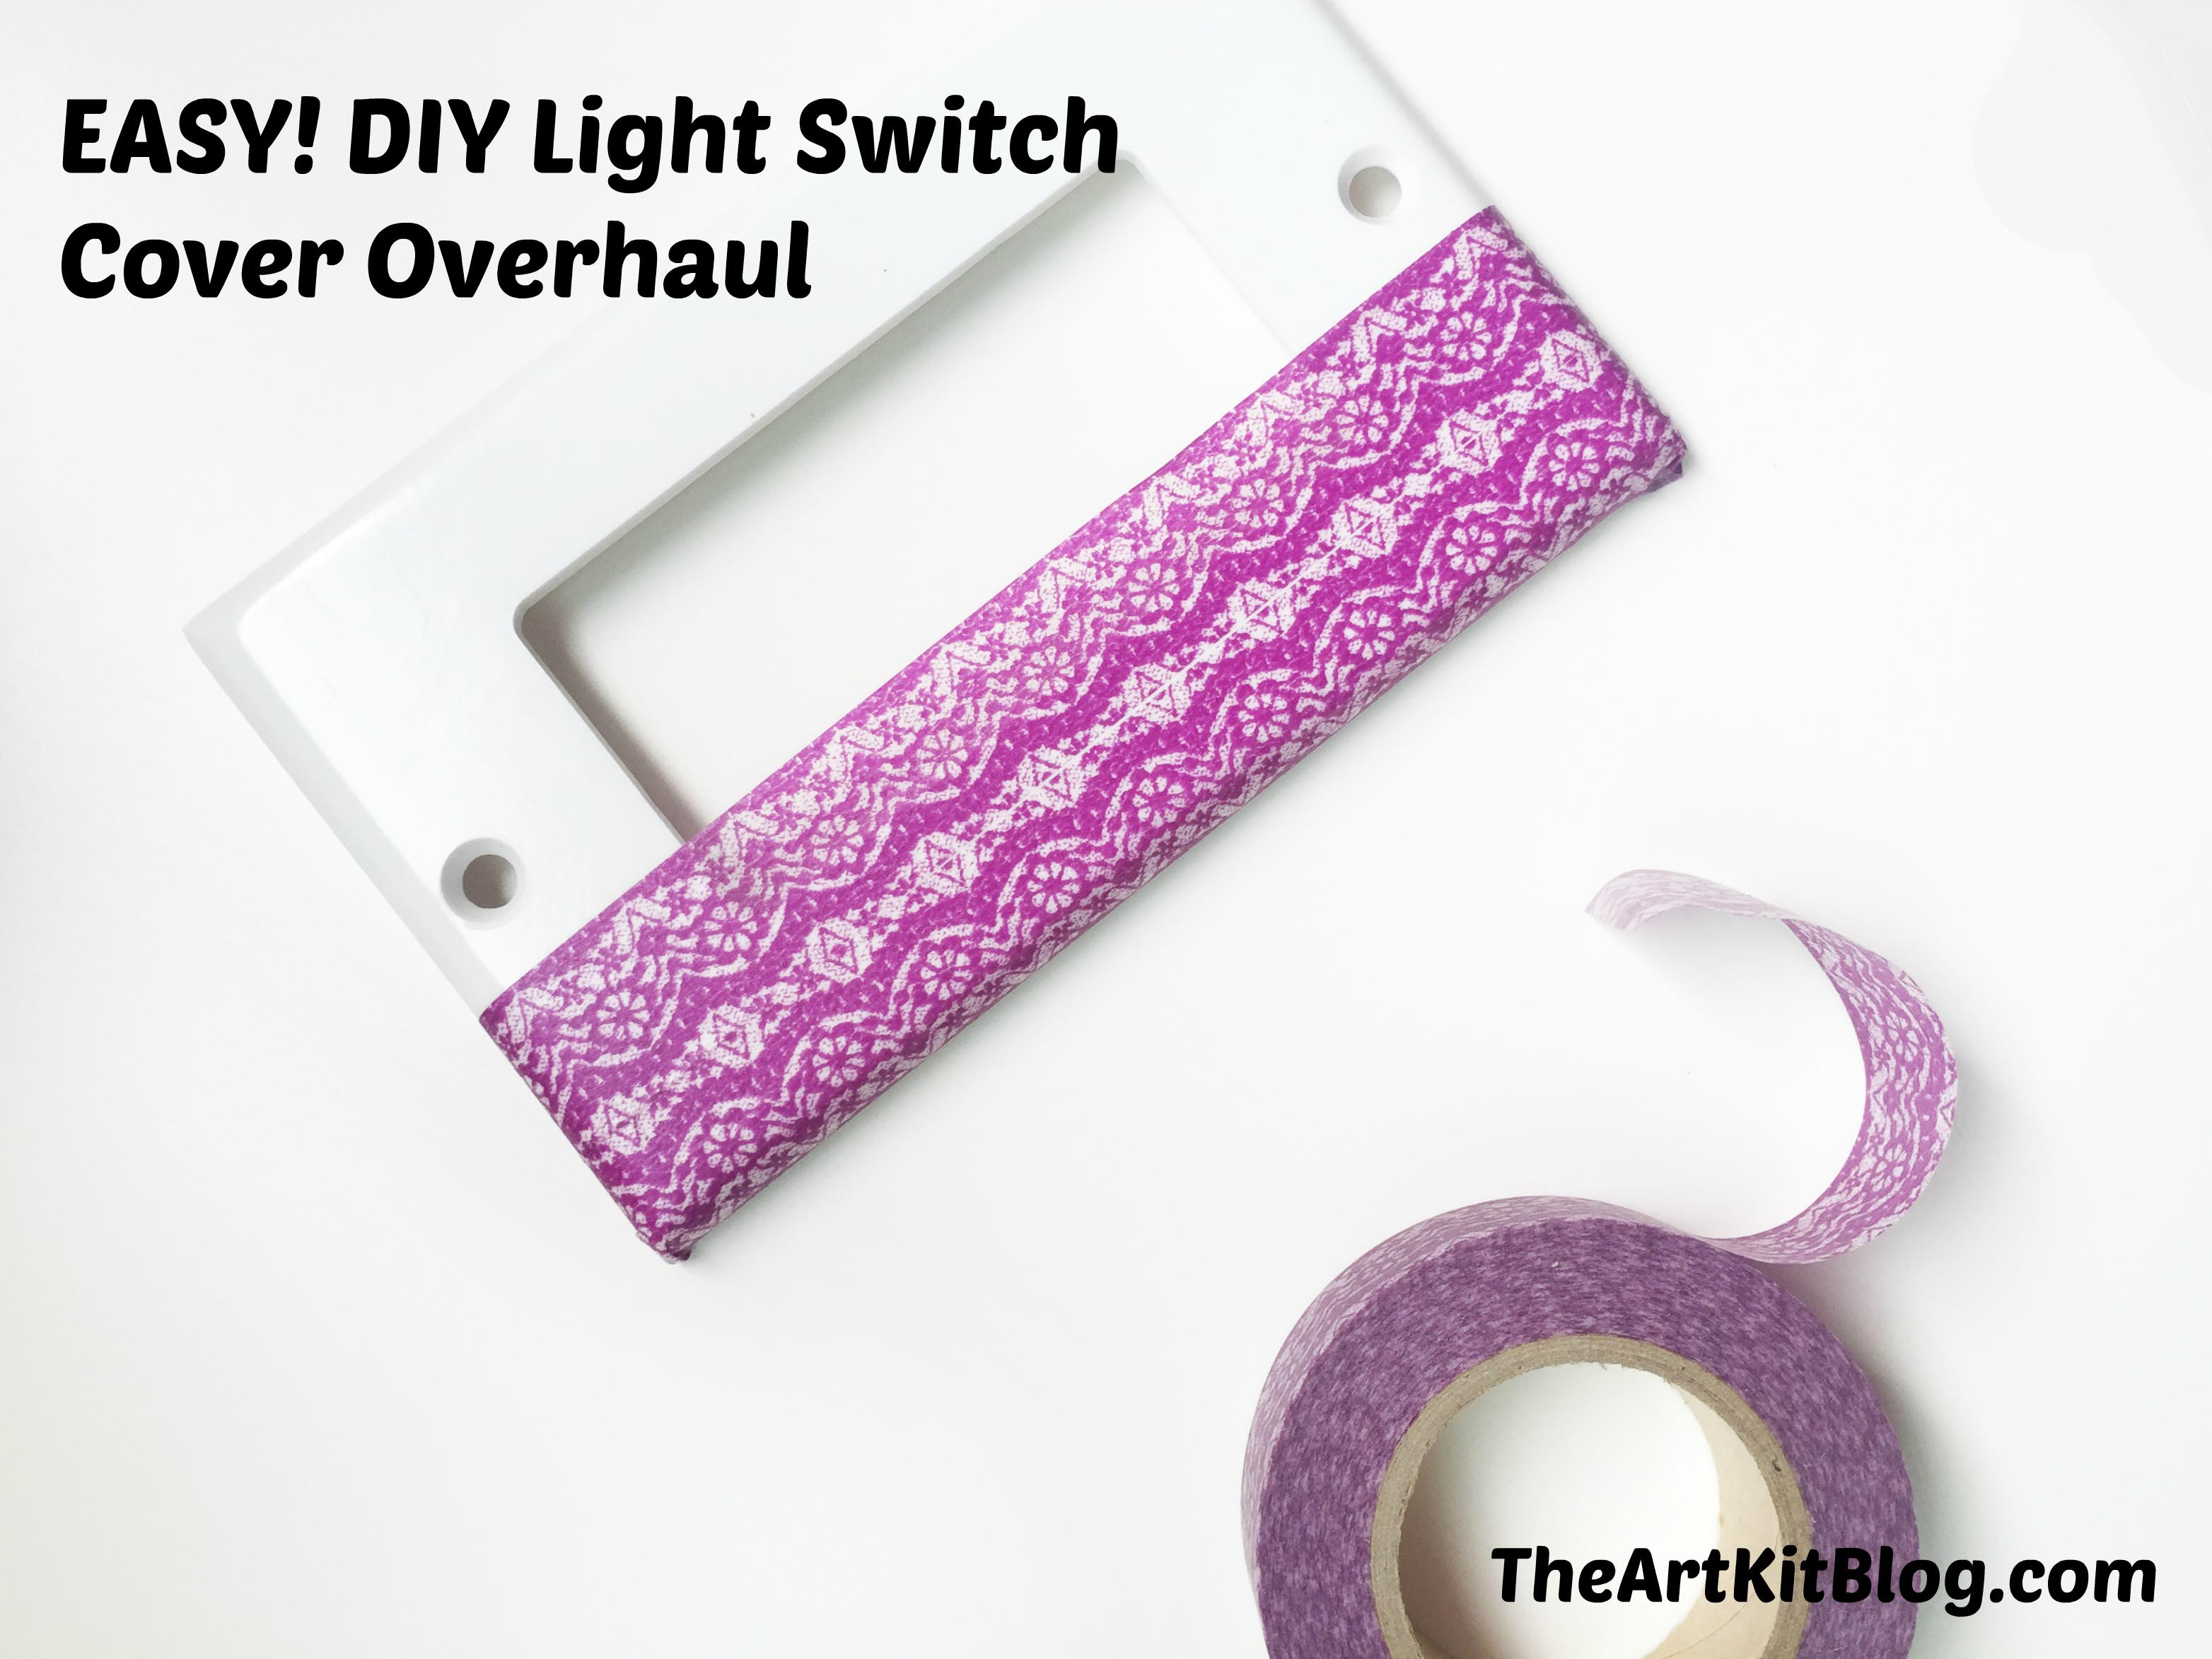 EASY! DIY Light Switch Cover Overhaul at The Art Kit Blog